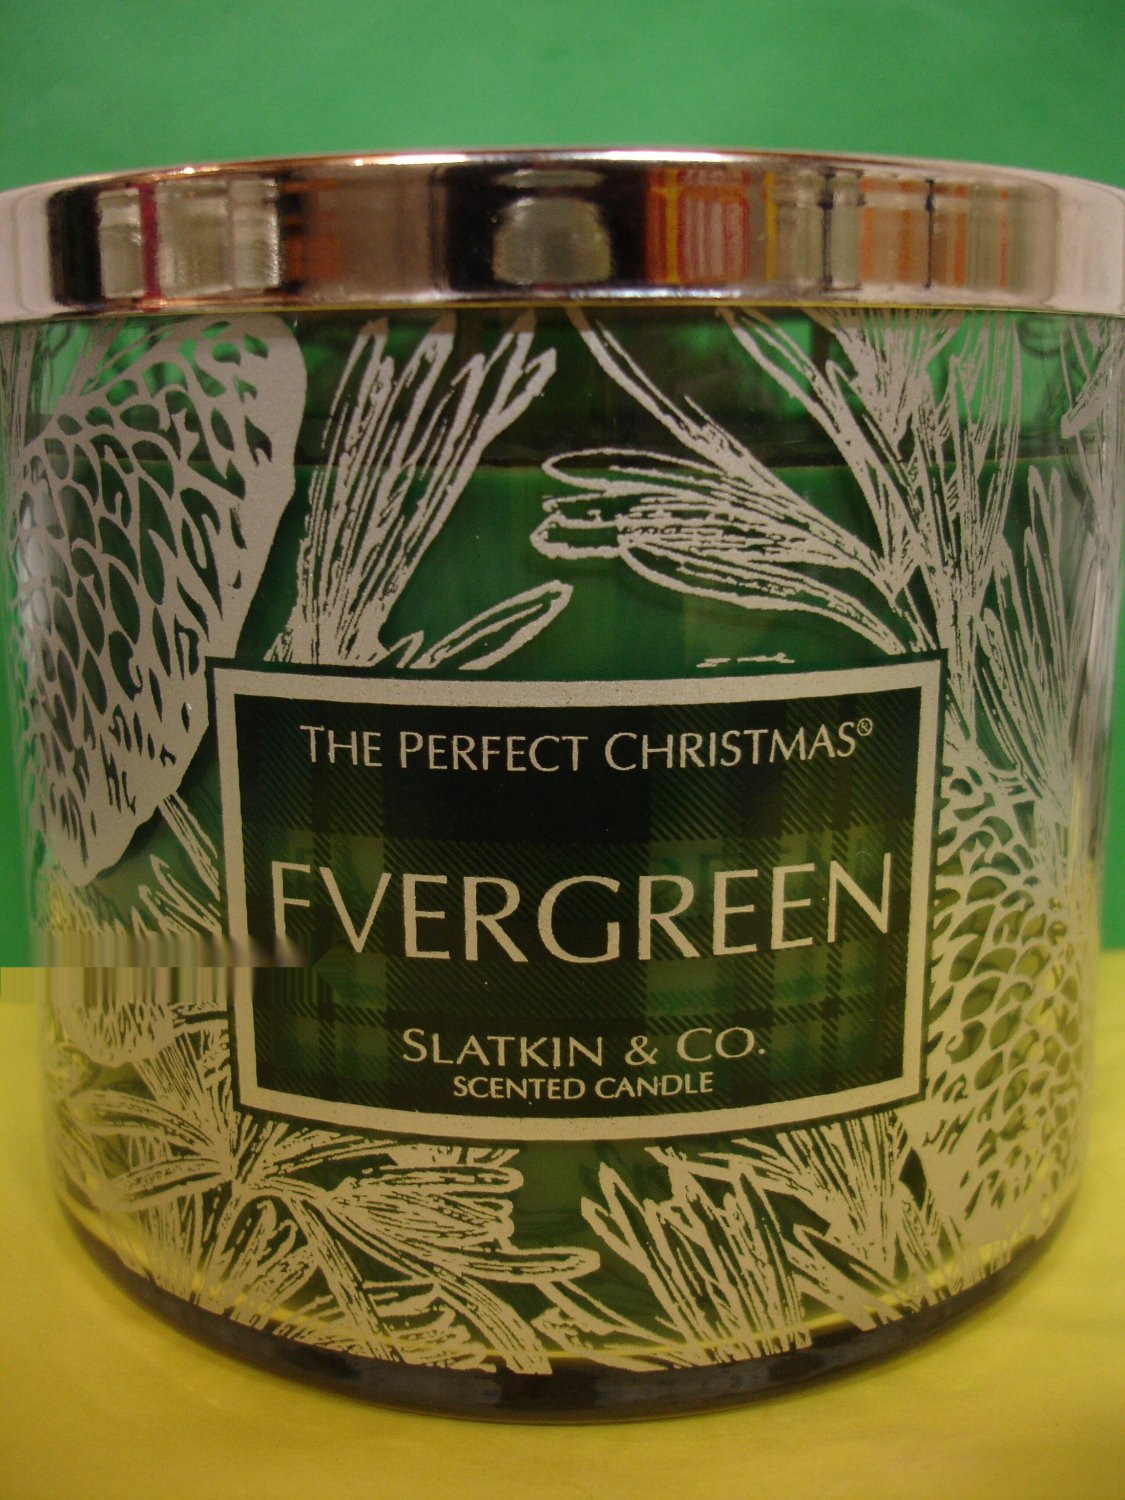 bath and body works slatkin evergreen candle large 3 wick. Black Bedroom Furniture Sets. Home Design Ideas